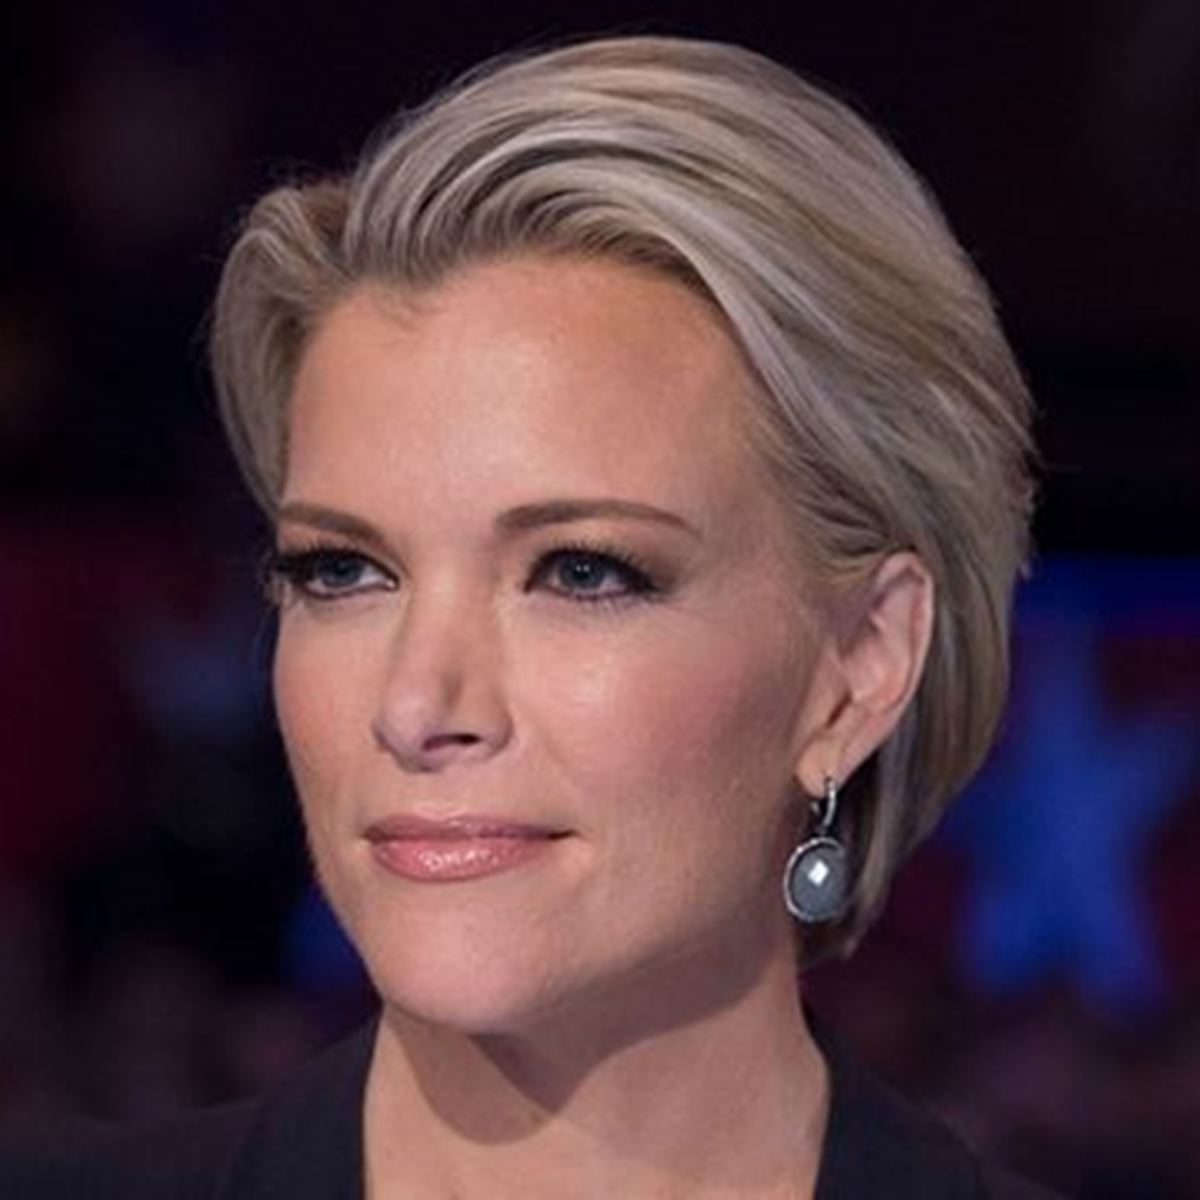 Megyn Kelly Is Expected To Interview Vladimir Putin